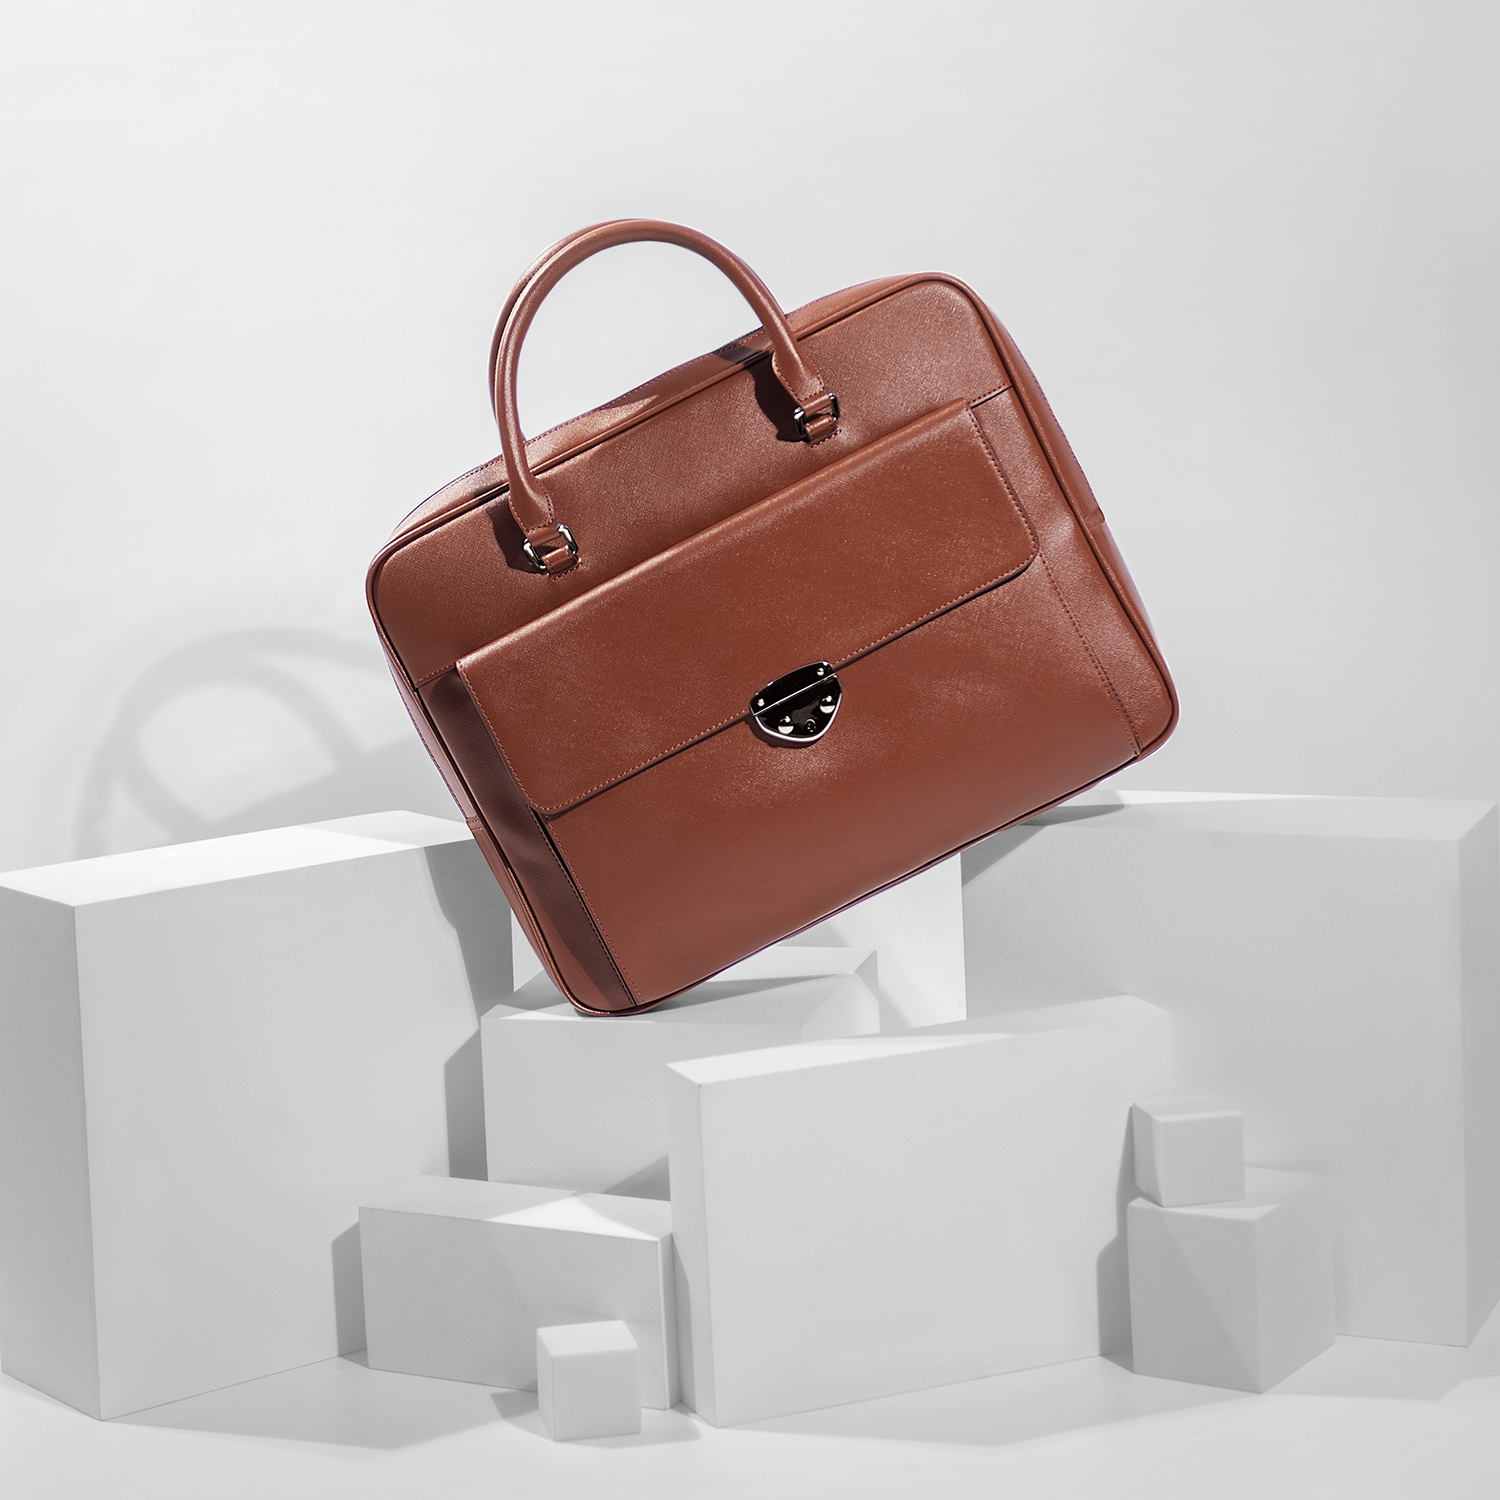 Exectuive Bags, Product photography, Styling, HighEND, White background